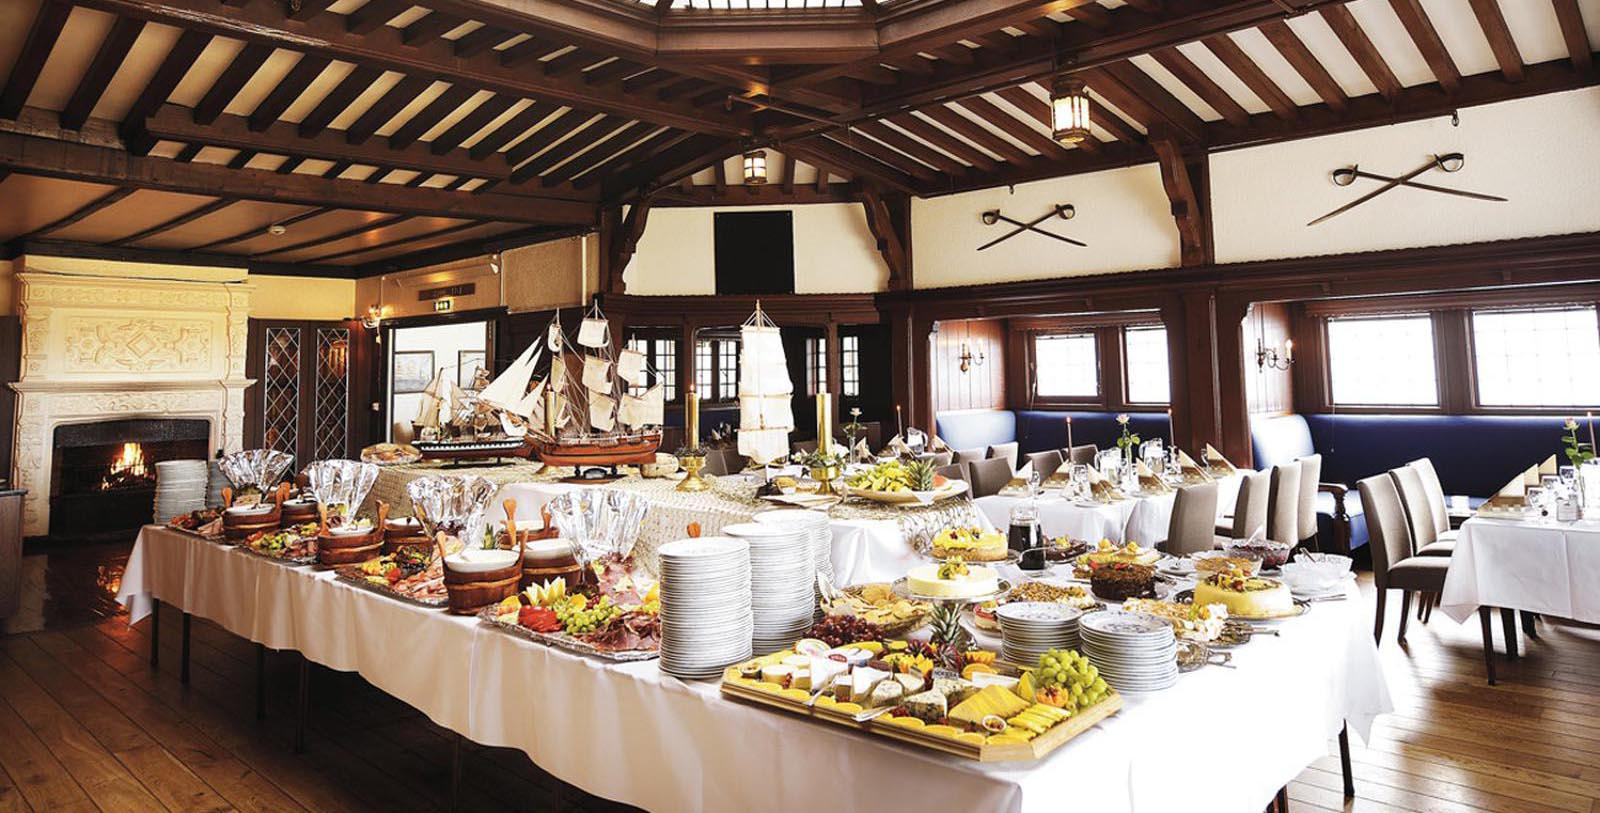 Image of Sunday Buffet at Sola Strand Hotel, 1914, Member of Historic Hotels Worldwide, in Sola, Norway, Taste